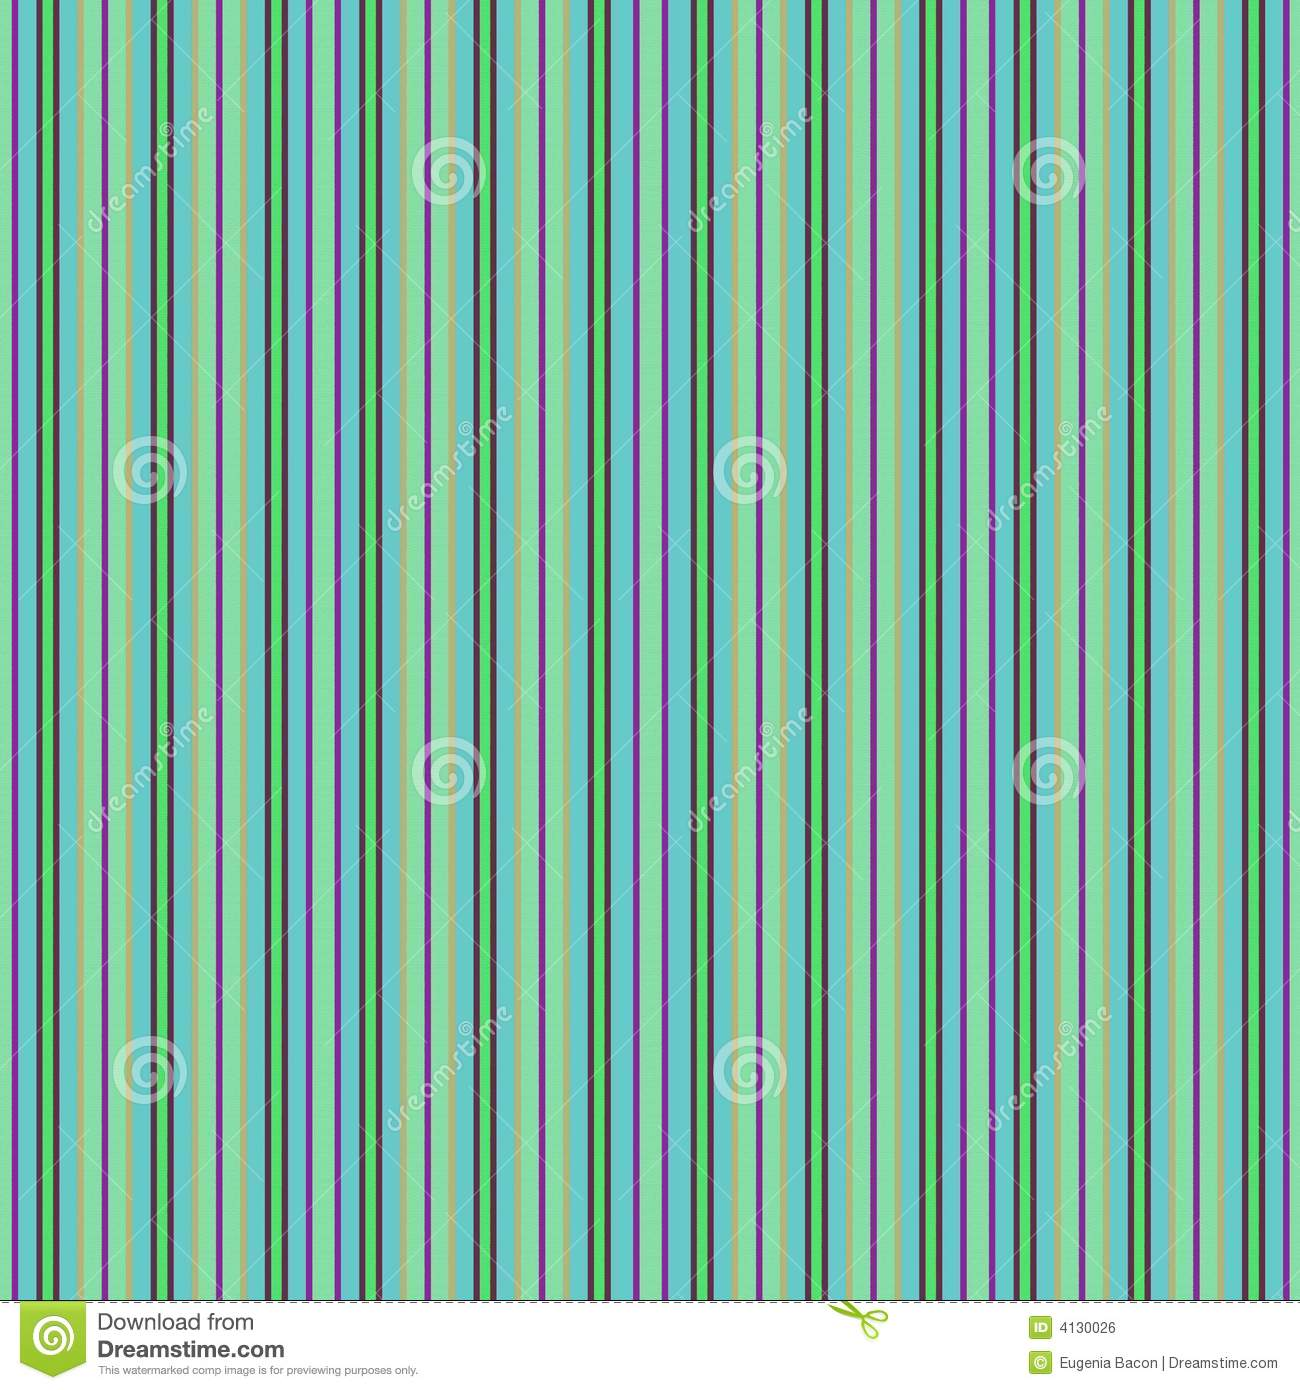 Cool Green And Blue Striped Background Royalty Free Stock ...